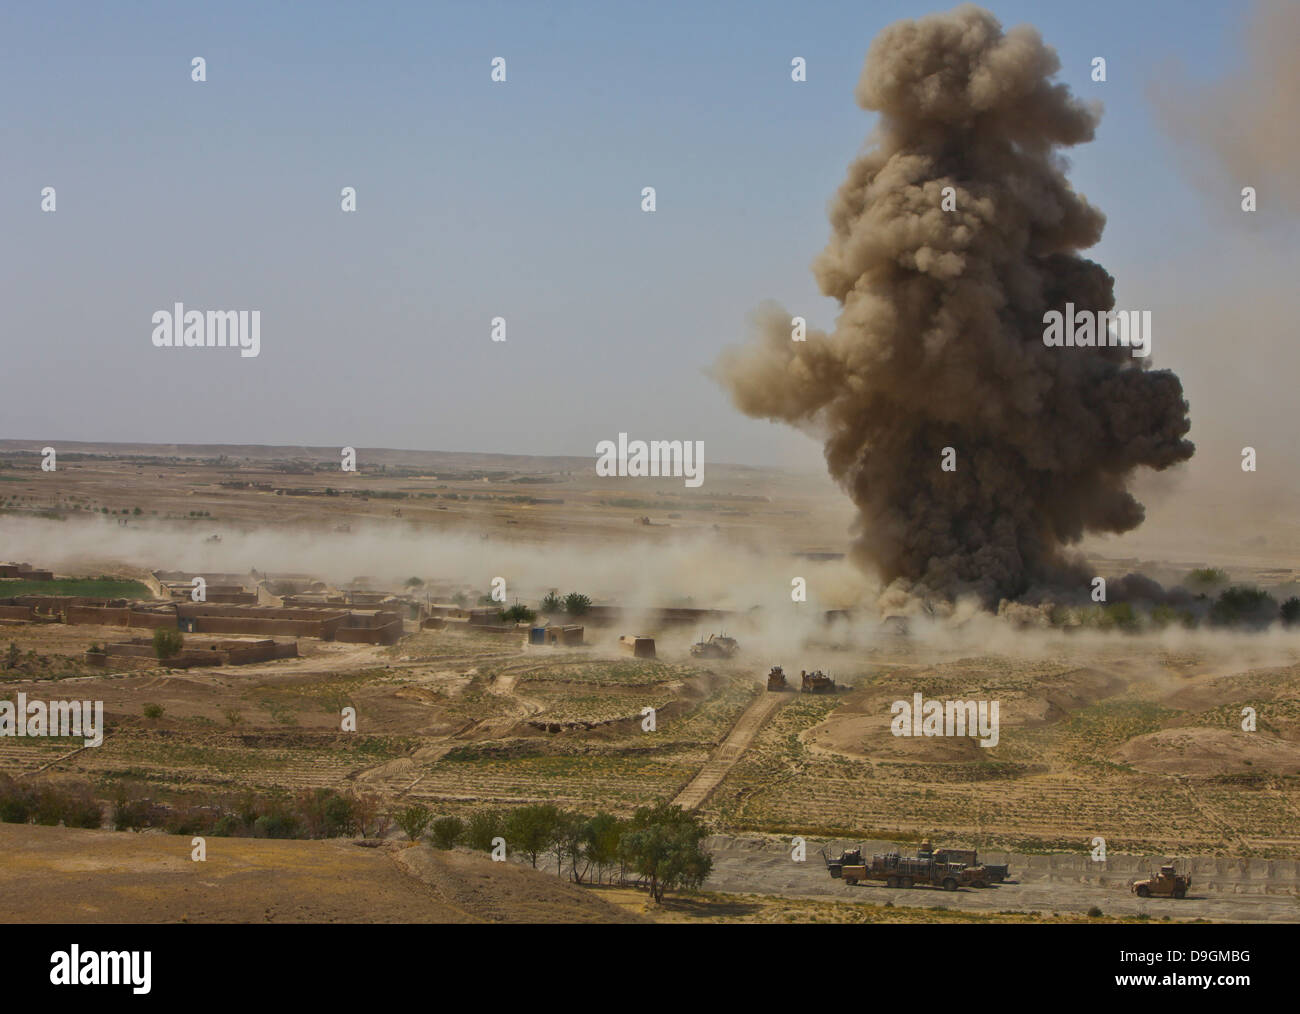 A cloud of dust and debris rises into the air in Afghanistan. - Stock Image